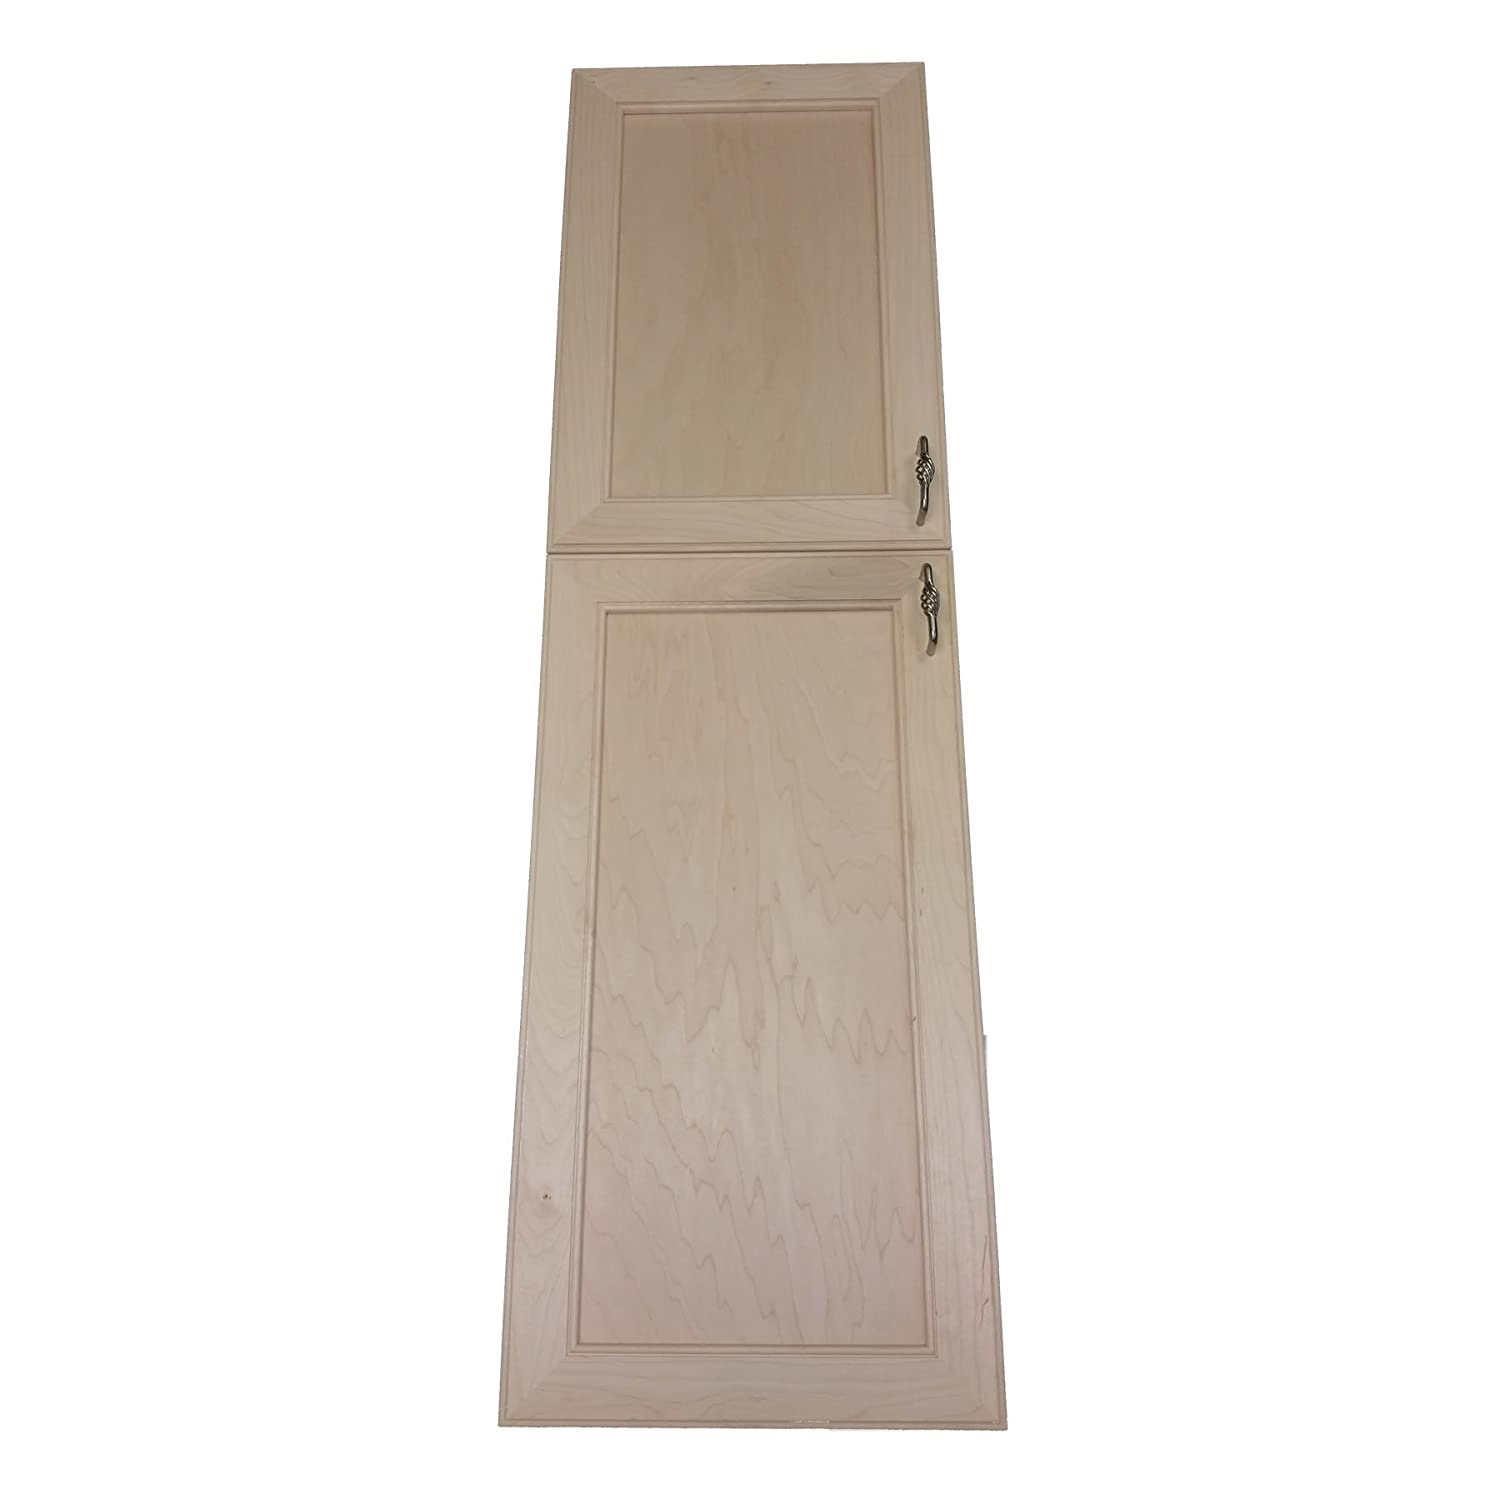 Wood Cabinets Direct MAX-BCH-254-2DRP Maxwell Recessed Two Door Frameless Pantry Cabinet, 54'